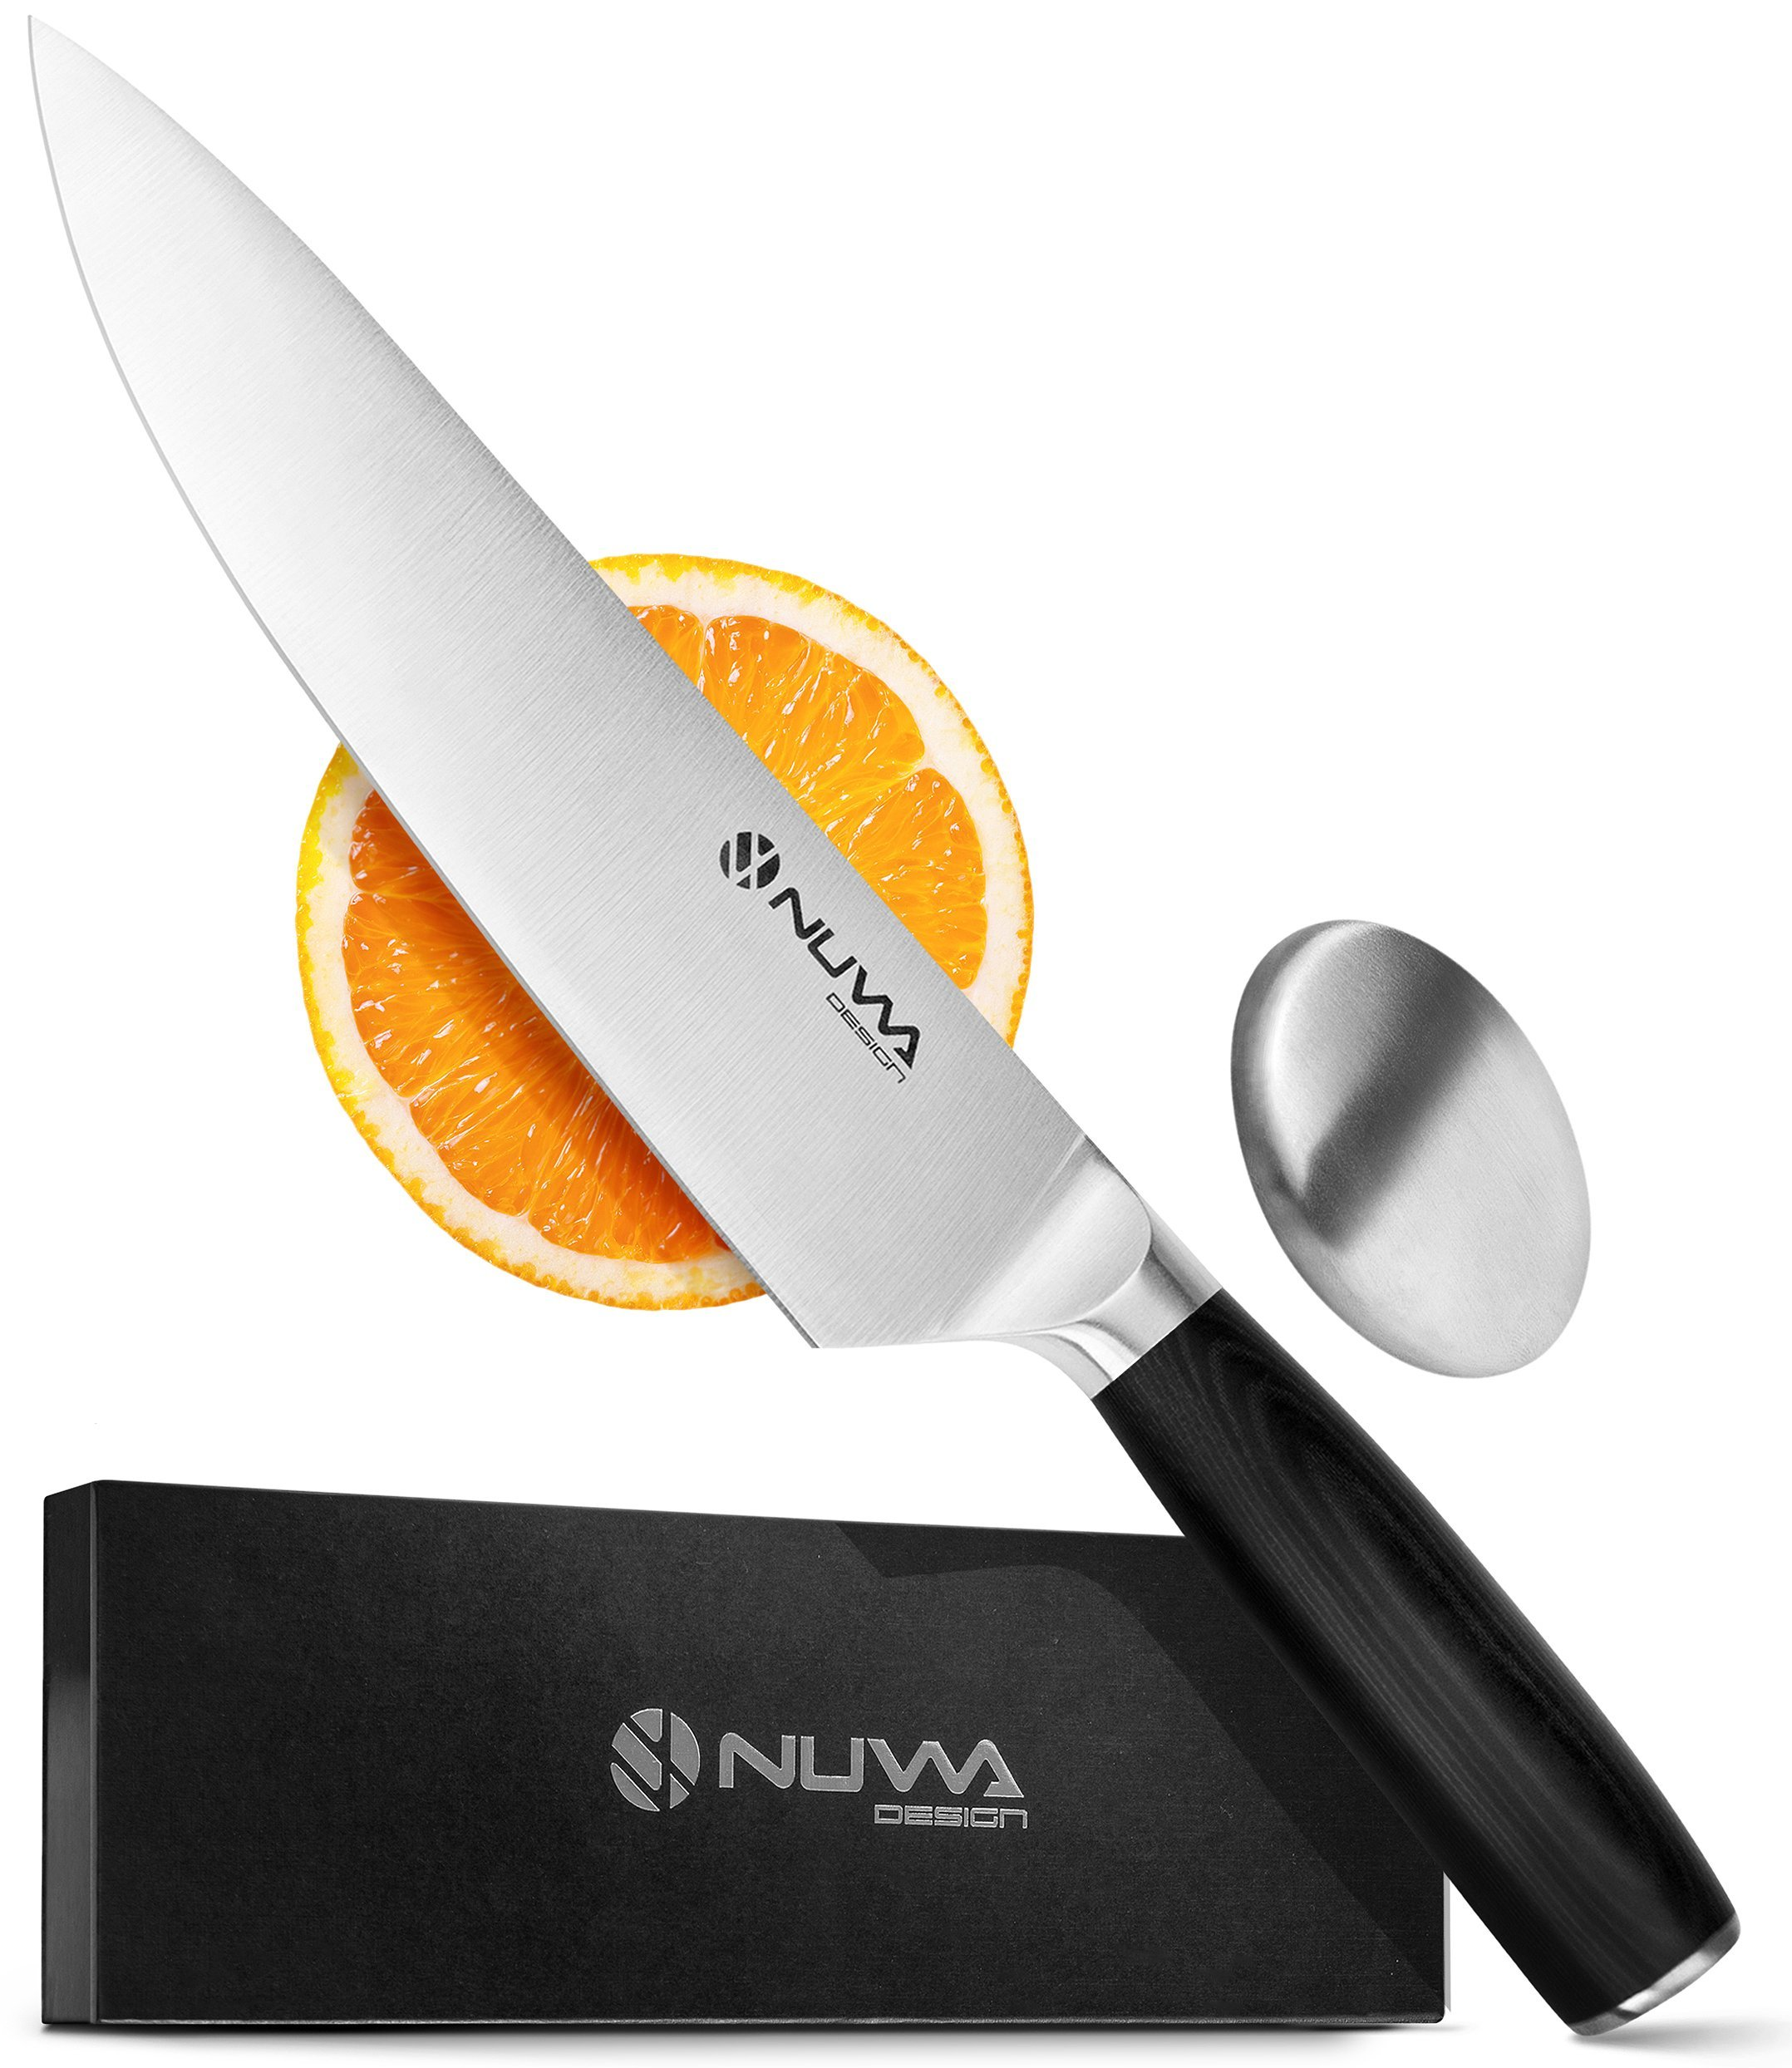 Nuwa Design 8 Inch Chef Knife High Carbon Stainless Steel Blade - Sharp Kitchen Knife for Chopping